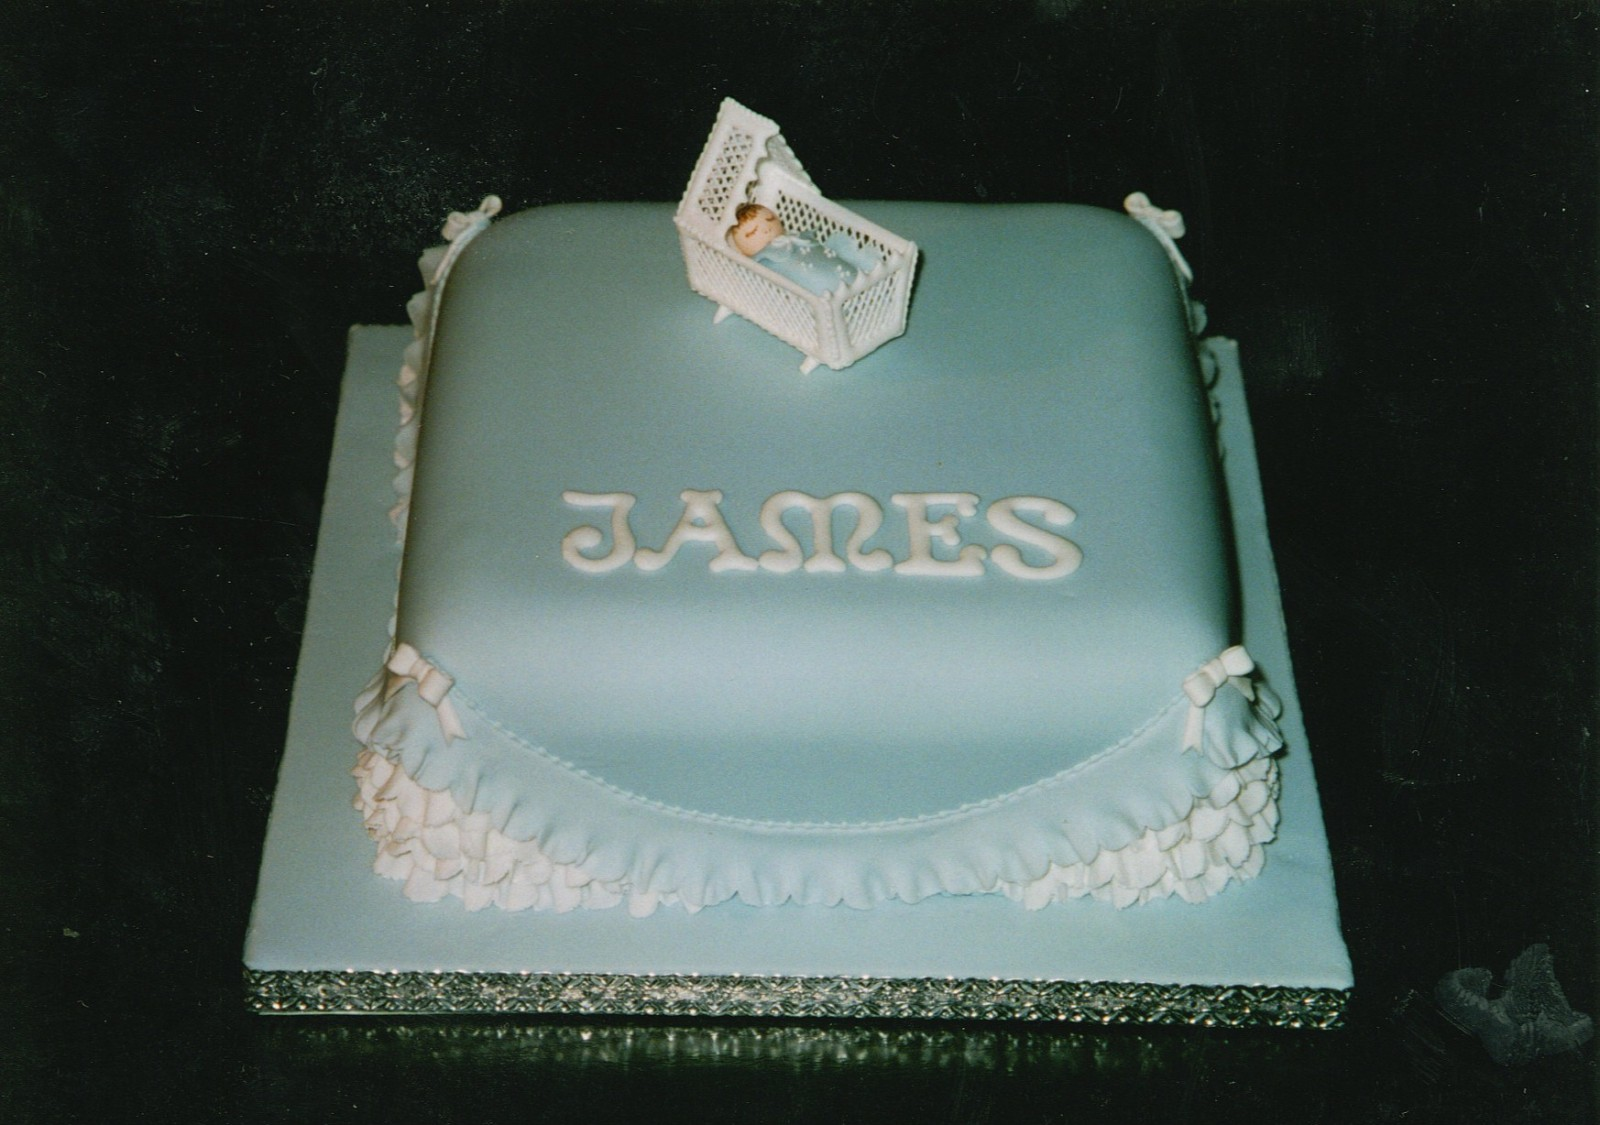 Square Christening Cake Images : Blue Square Christening Cake with A Cradle   Susie s Cakes